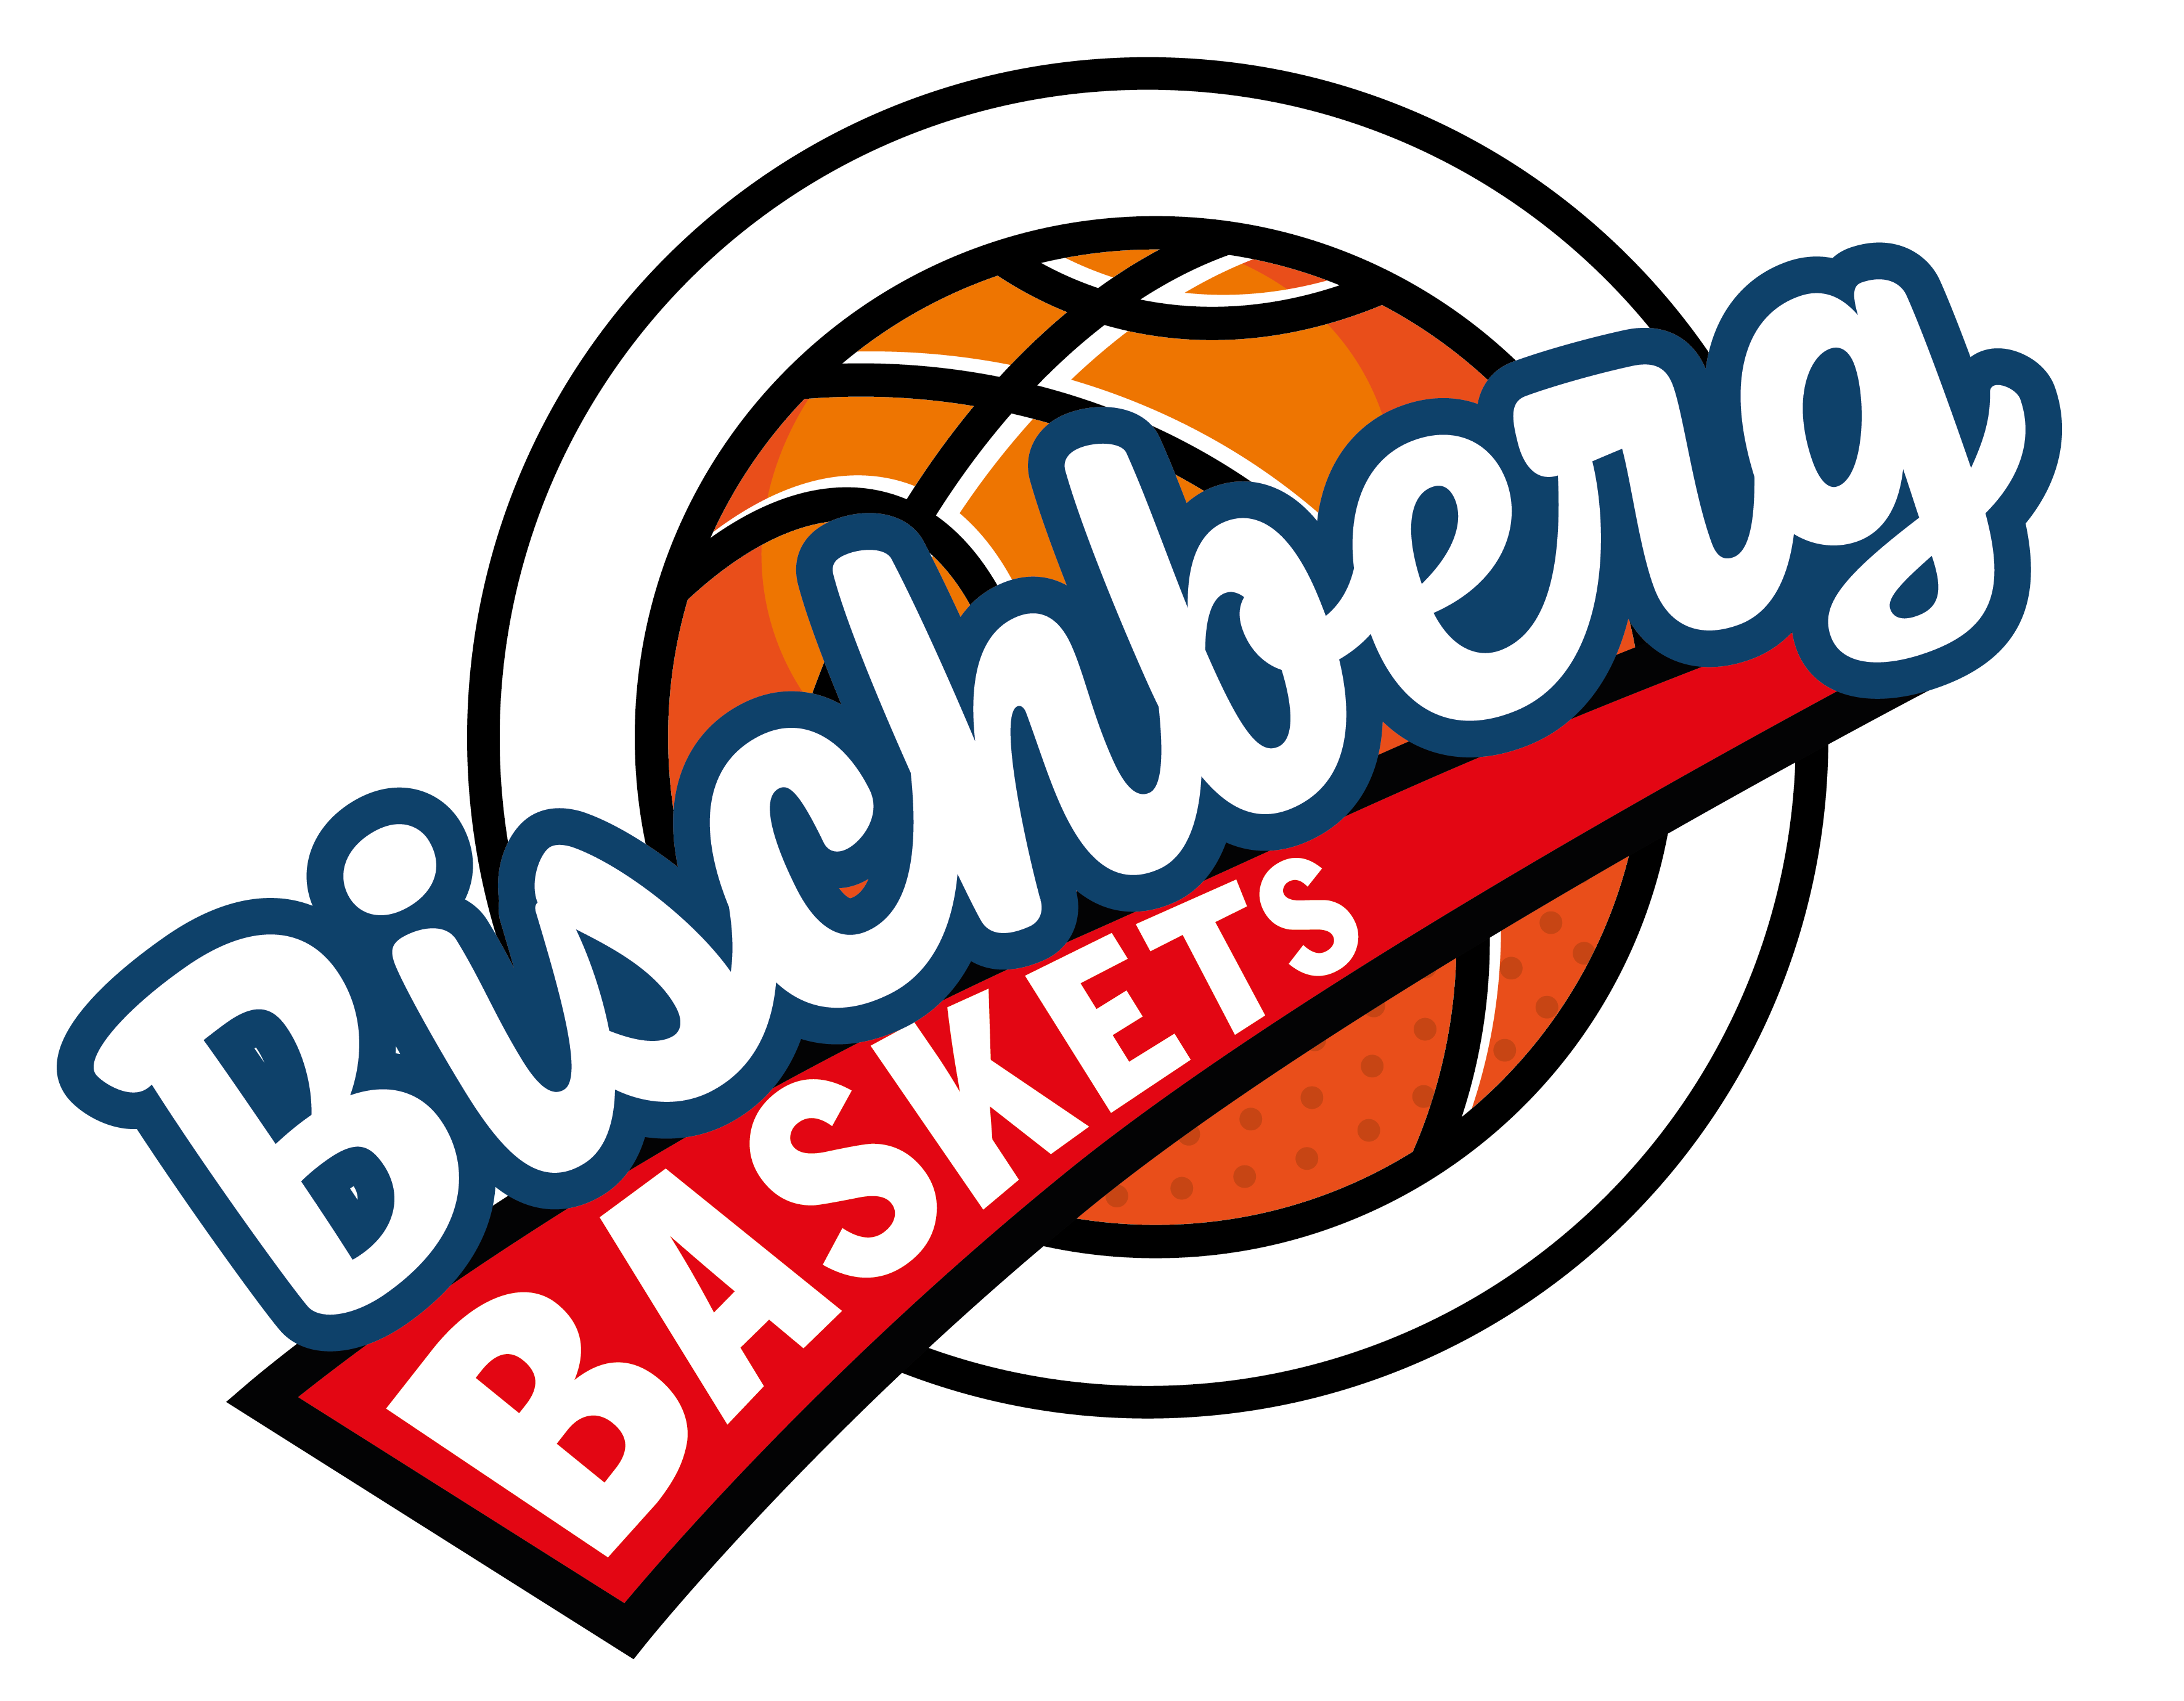 Logo Bischberg Baskets